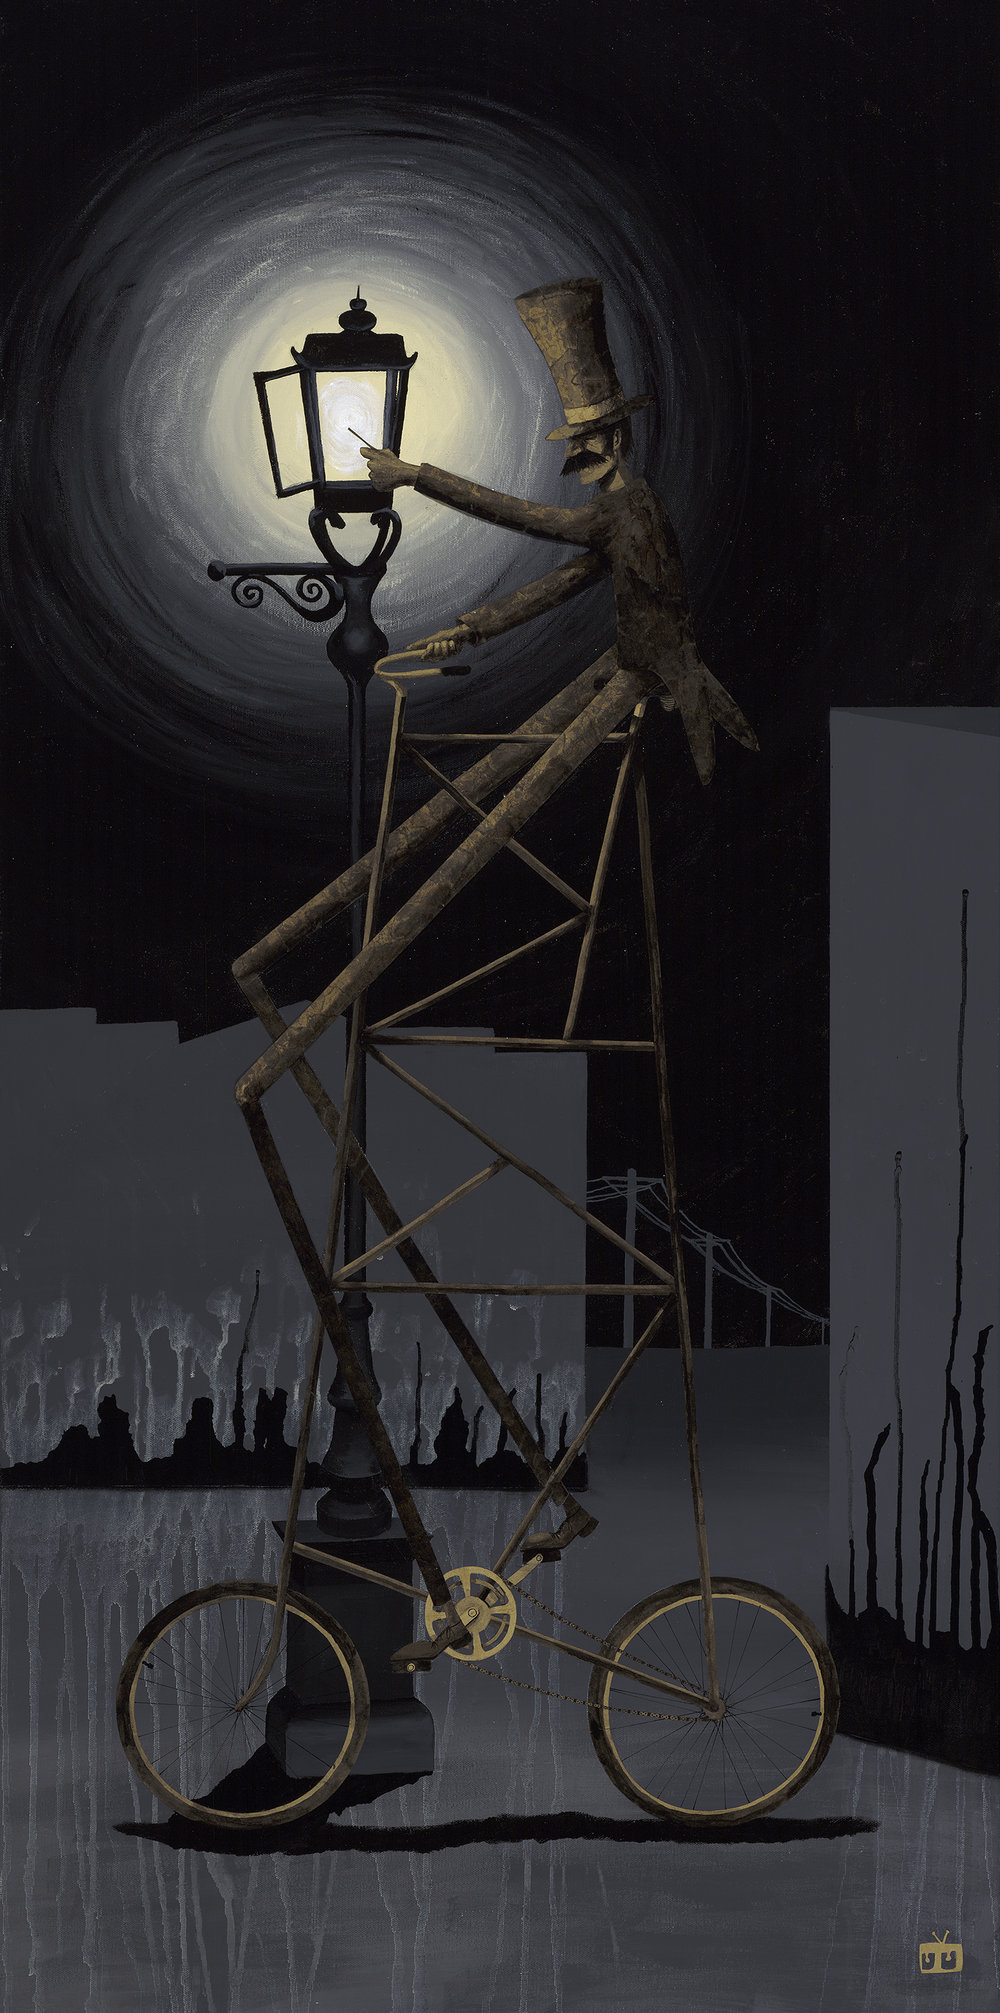 The Lamplighter  |  Acrylic, Watercolor Paper & Kraft Paper on Canvas  |  24 x 48 in.  |  2011